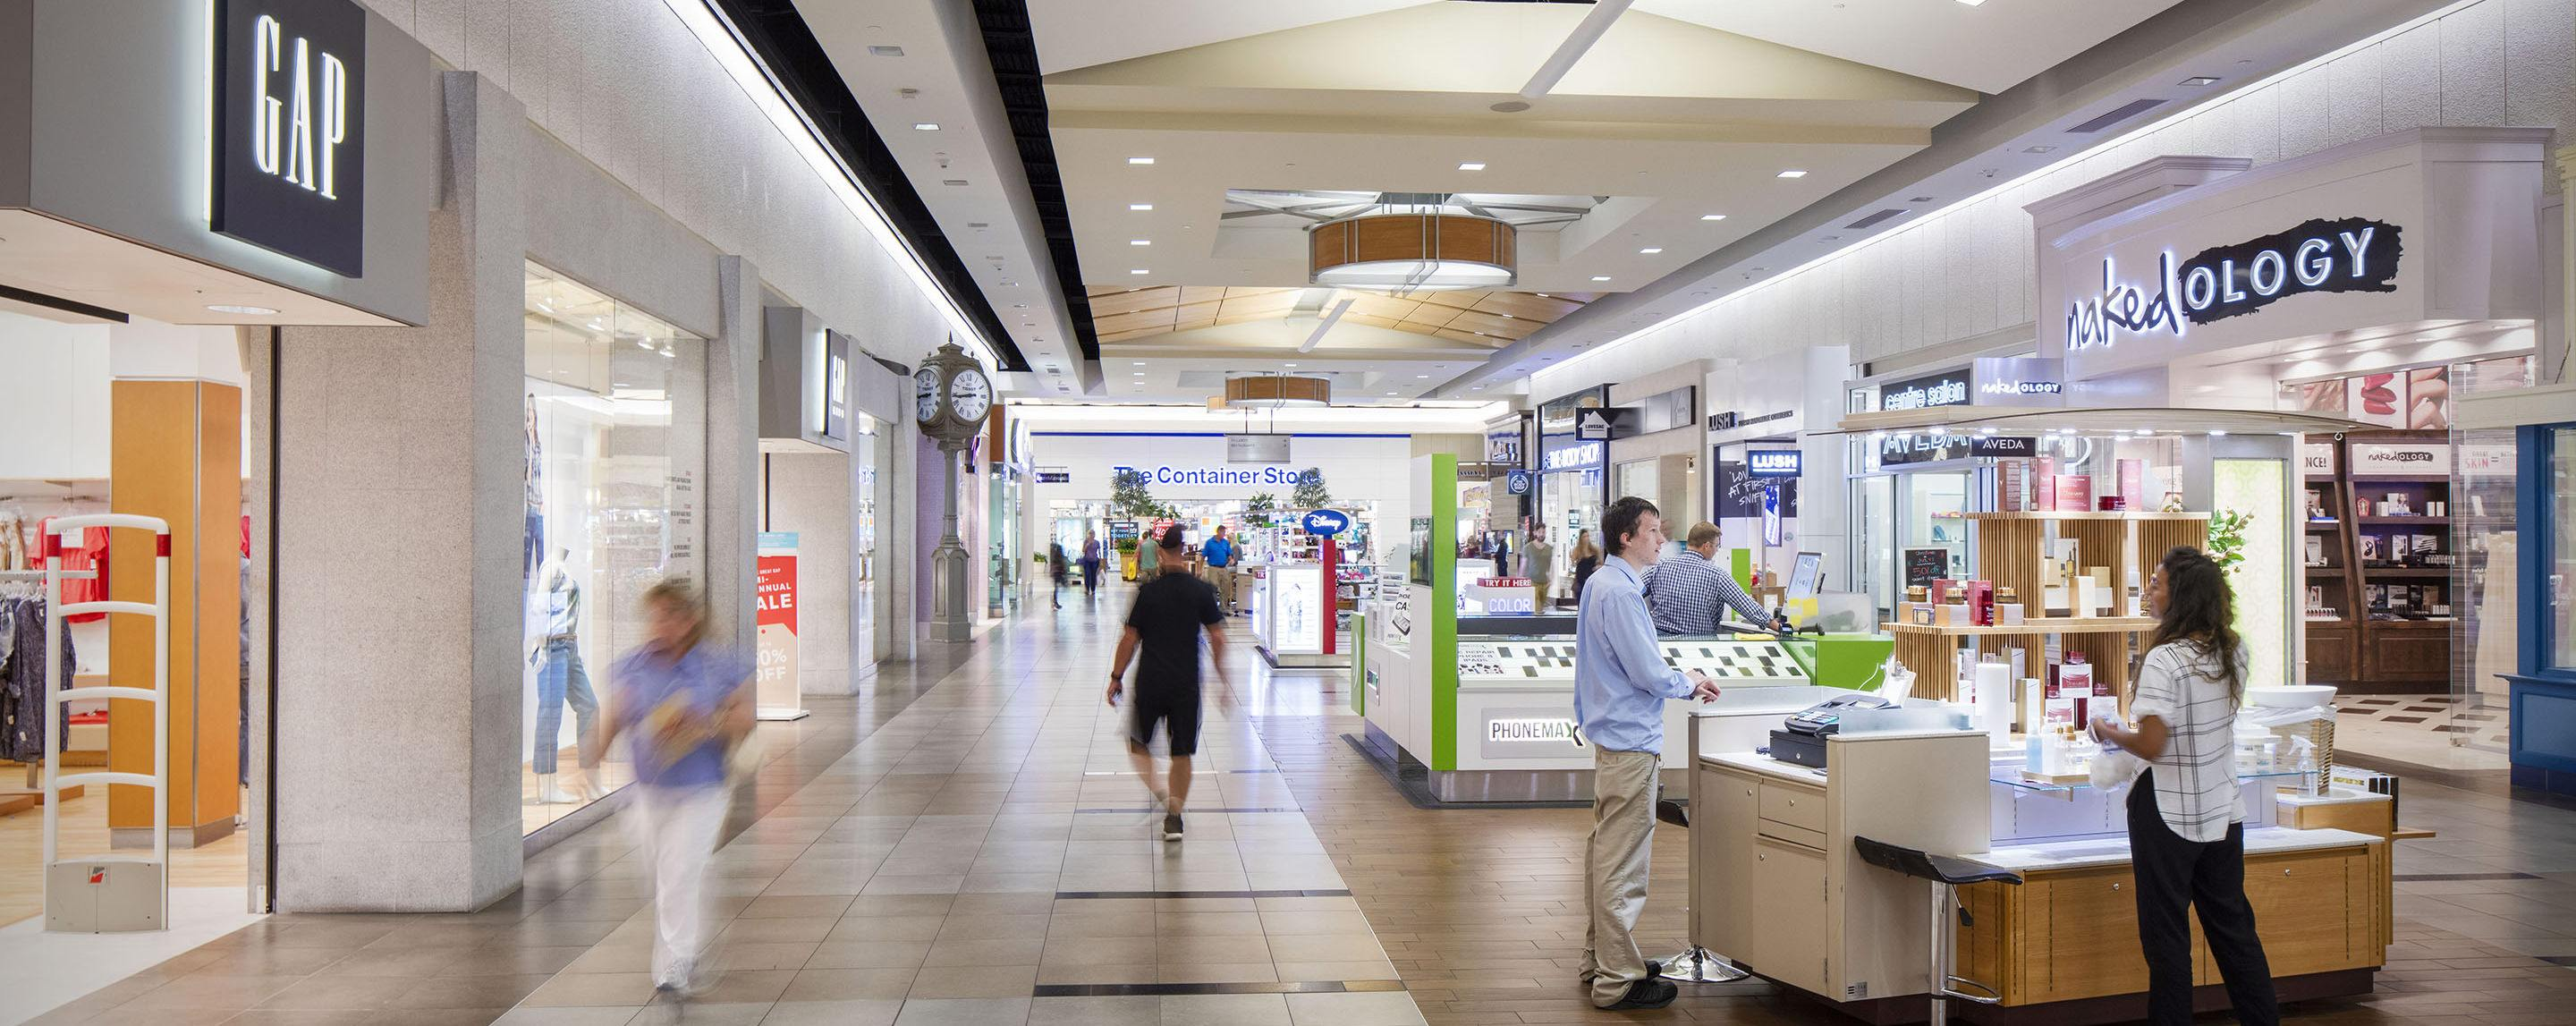 People shop among the shops and kiosks of an indoor mall. Storefronts include Lush and Gap